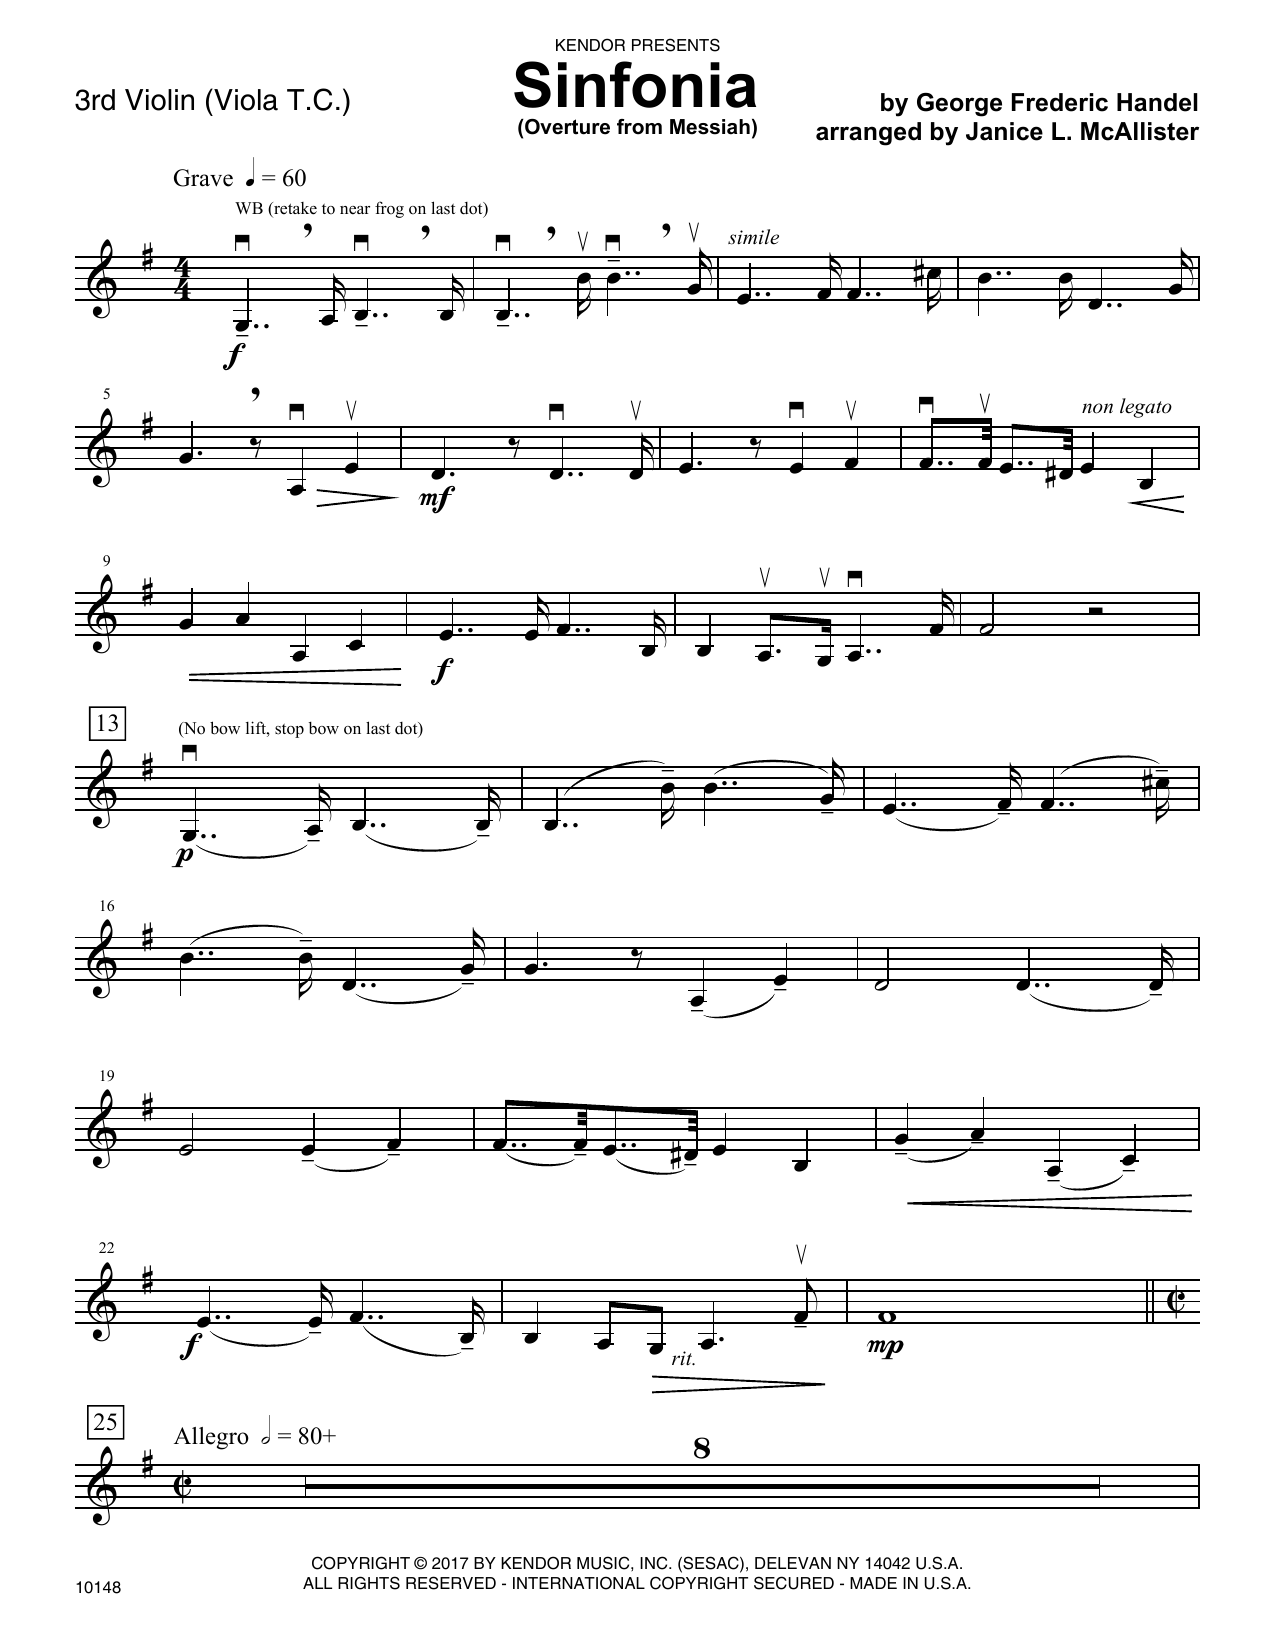 George Frideric Handel Sinfonia (Overture from Messiah) - Violin 3 (Viola T.C.) sheet music notes and chords. Download Printable PDF.